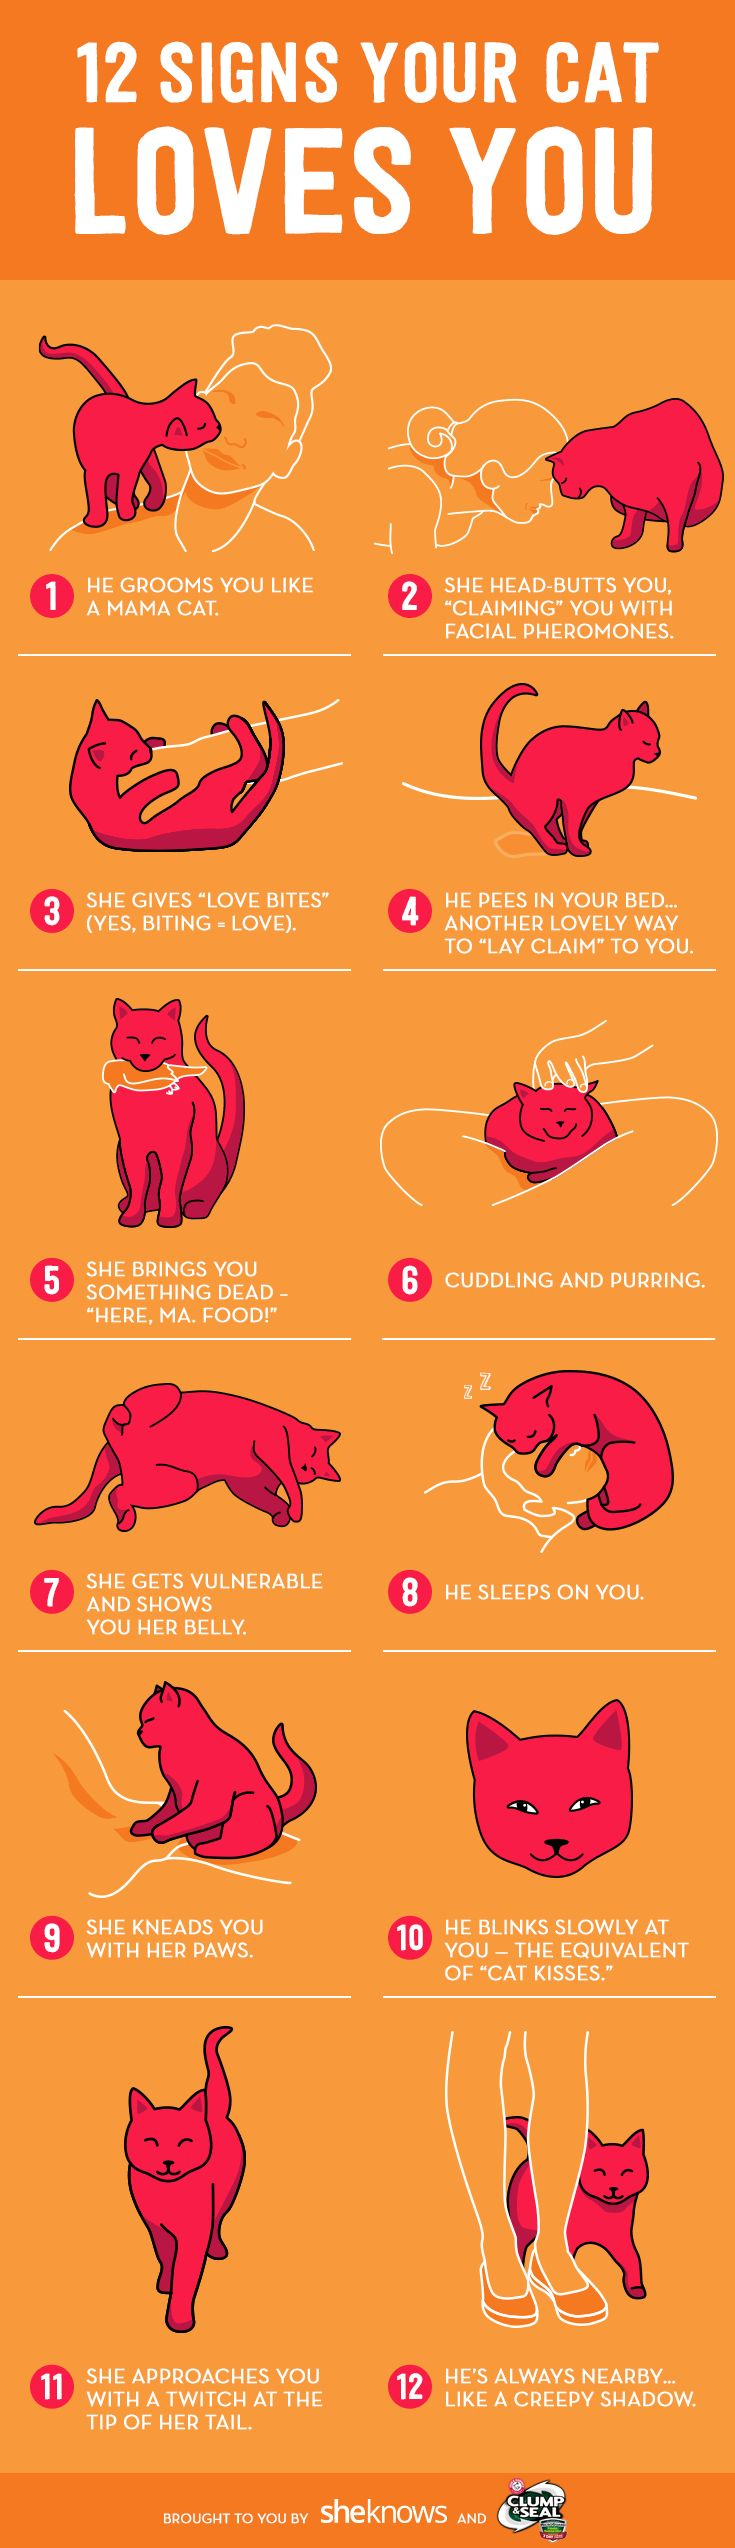 How to know your cat loves you, even if he claws the crap out of your hands